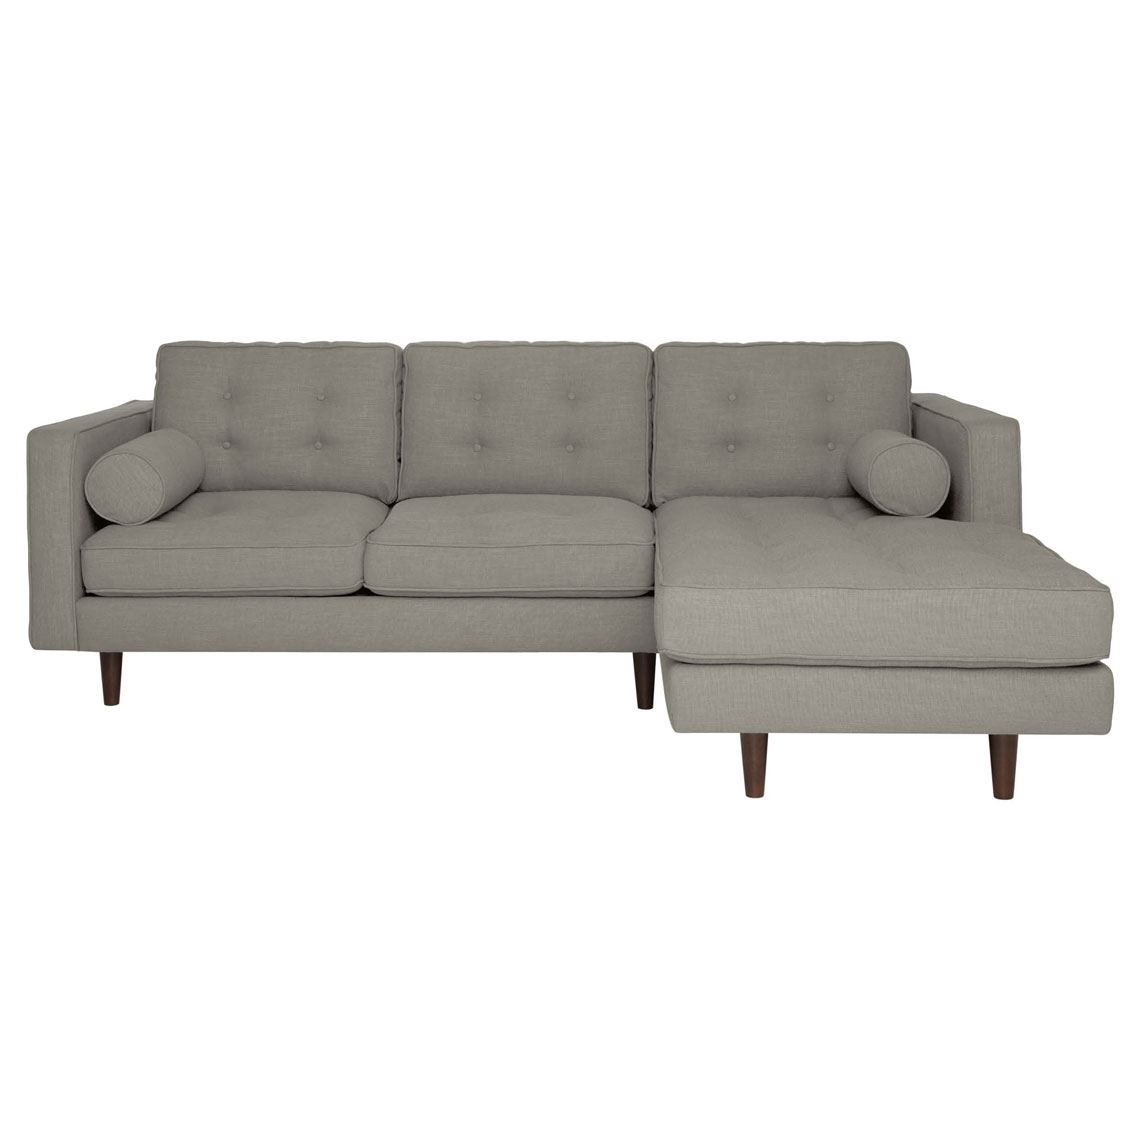 Modular Sofas | Modular Couches & Furniture | Freedom Within Aspen 2 Piece Sectionals With Raf Chaise (View 11 of 25)